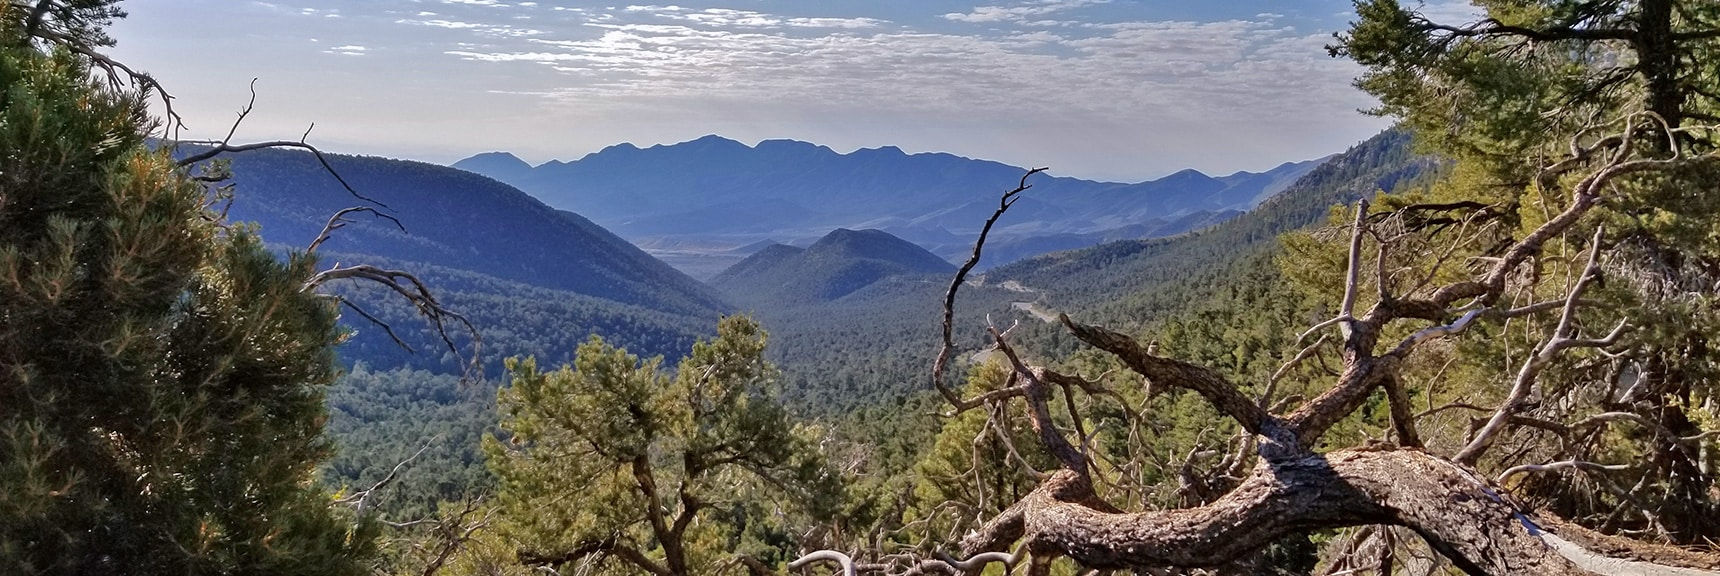 Morning View of La Madre Mountains Wilderness from Base of Robbers Roost Cliffs | Robbers Roost and Beyond | Spring Mountains, Nevada